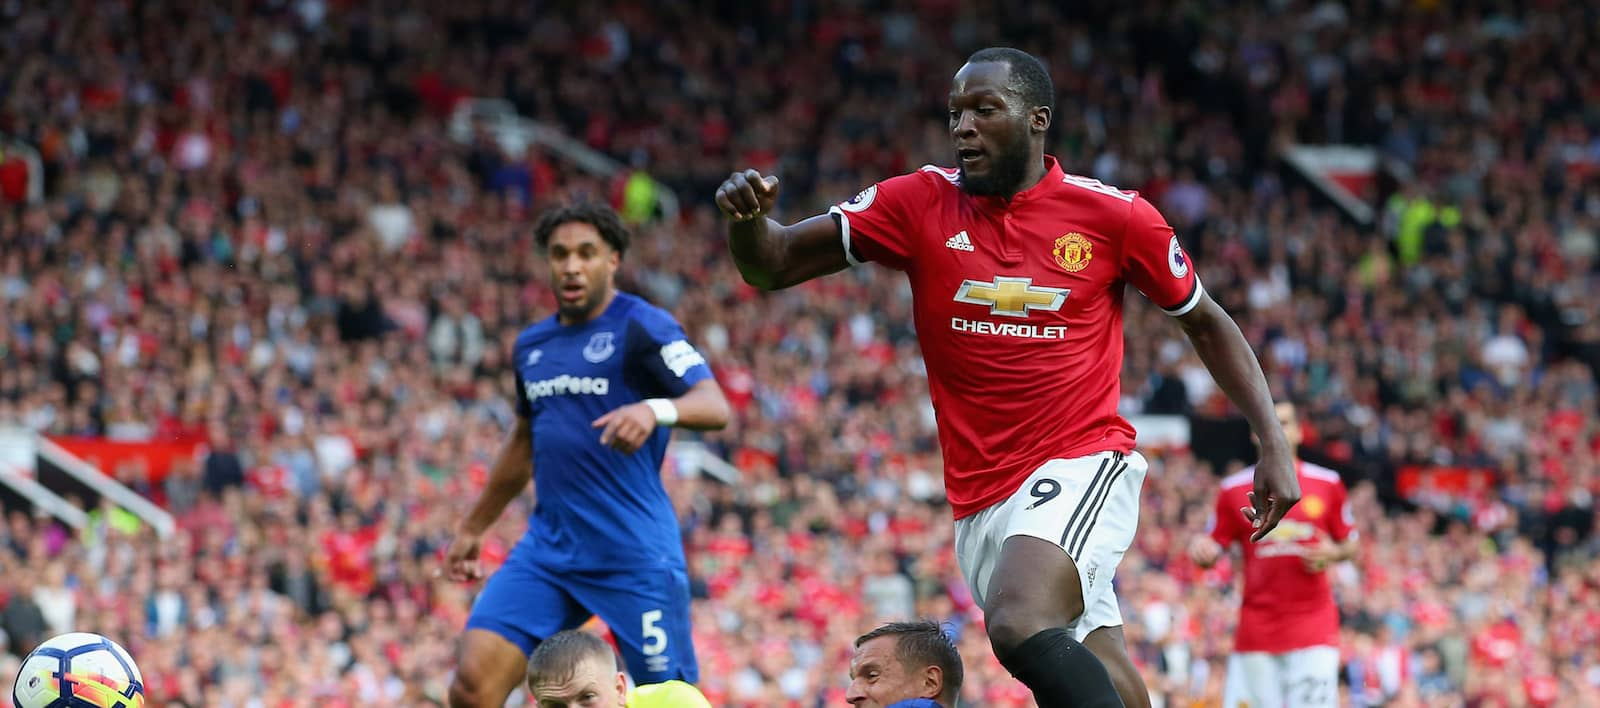 Roberto Martinez confirms Romelu Lukaku has recovered from ankle injury